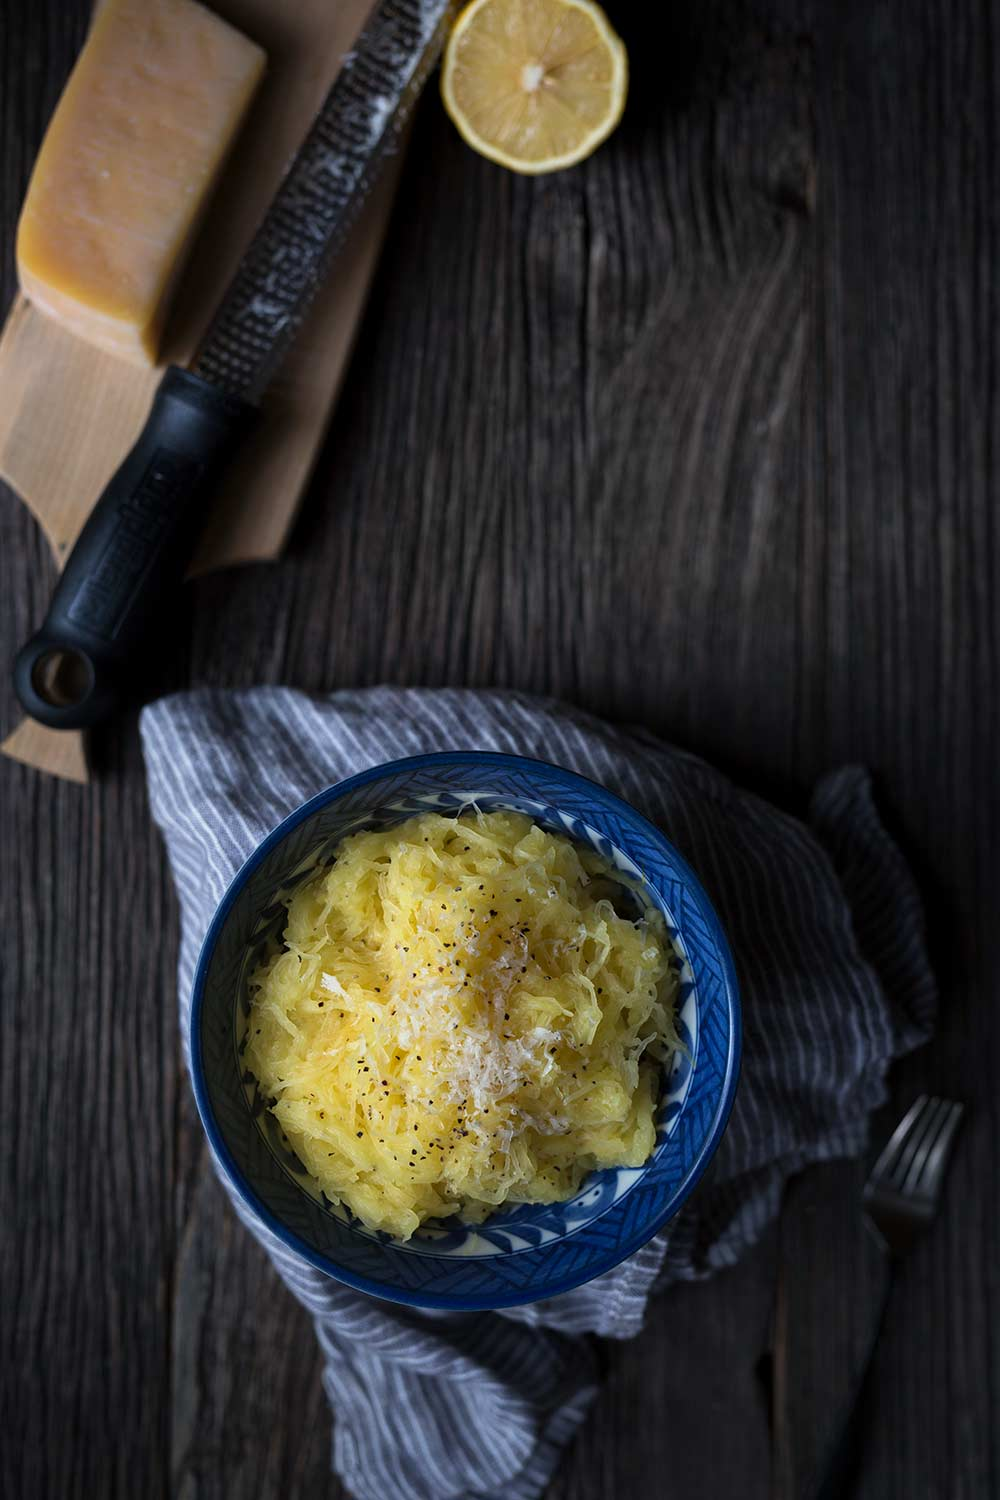 A bowl of Baked Spaghetti Squash with Butter, Parmesan, and Lemon, alongside a block of cheese and half a lemon.